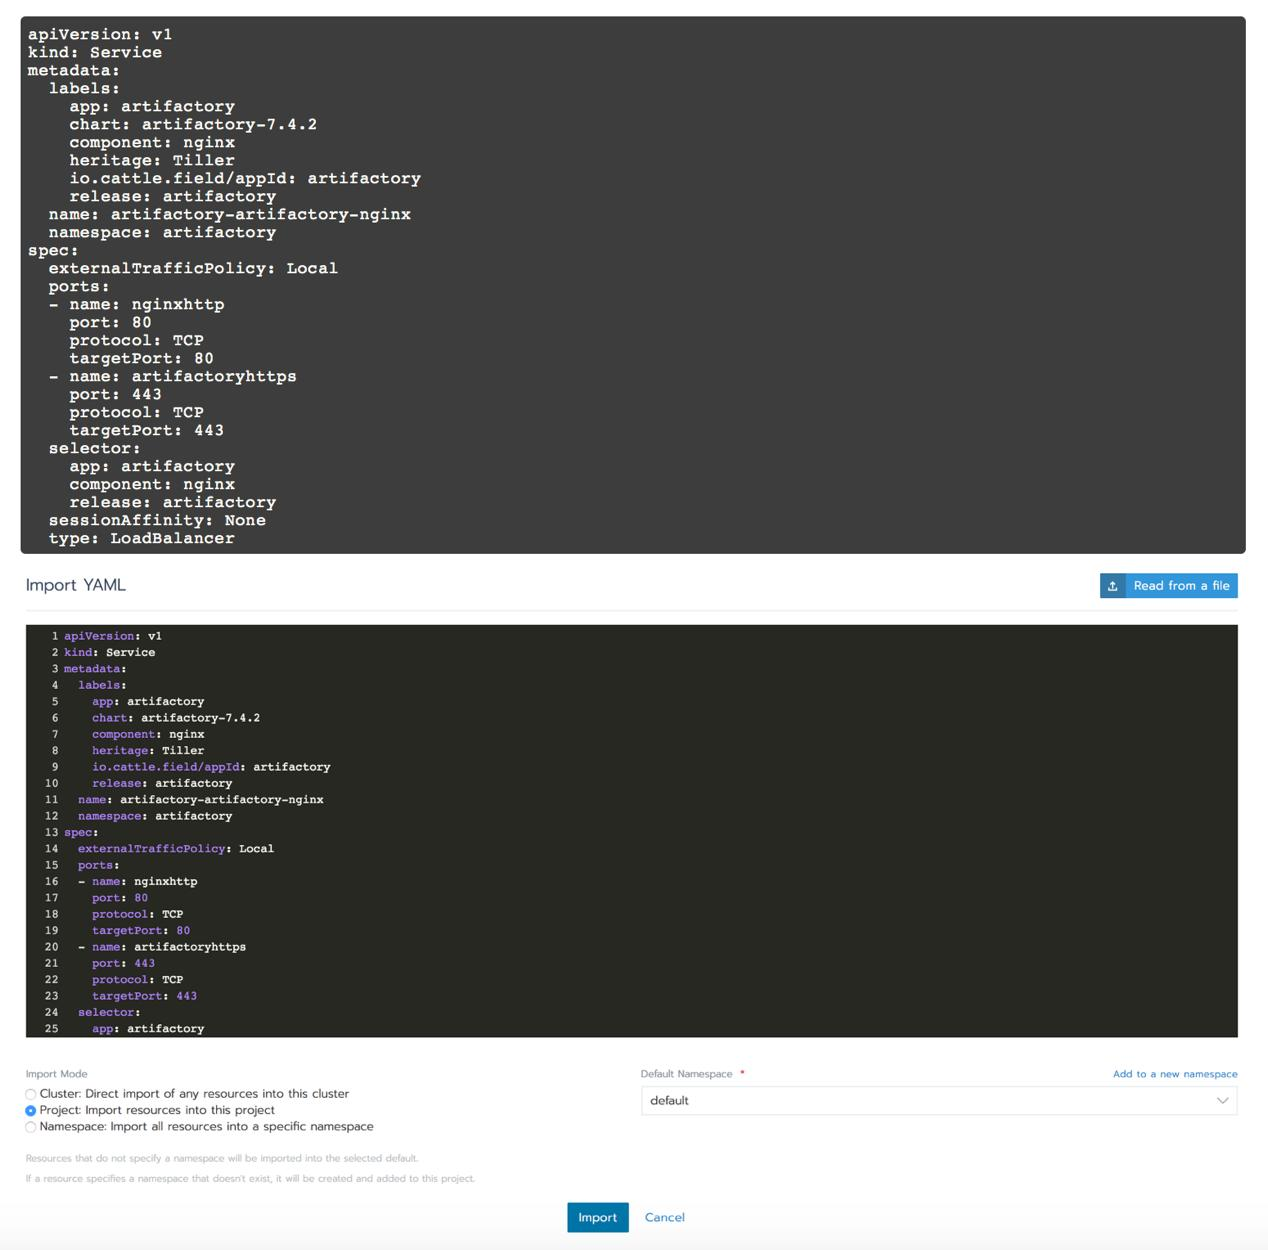 Deploy and manage JFrog Artifactory on Kubernetes clusters